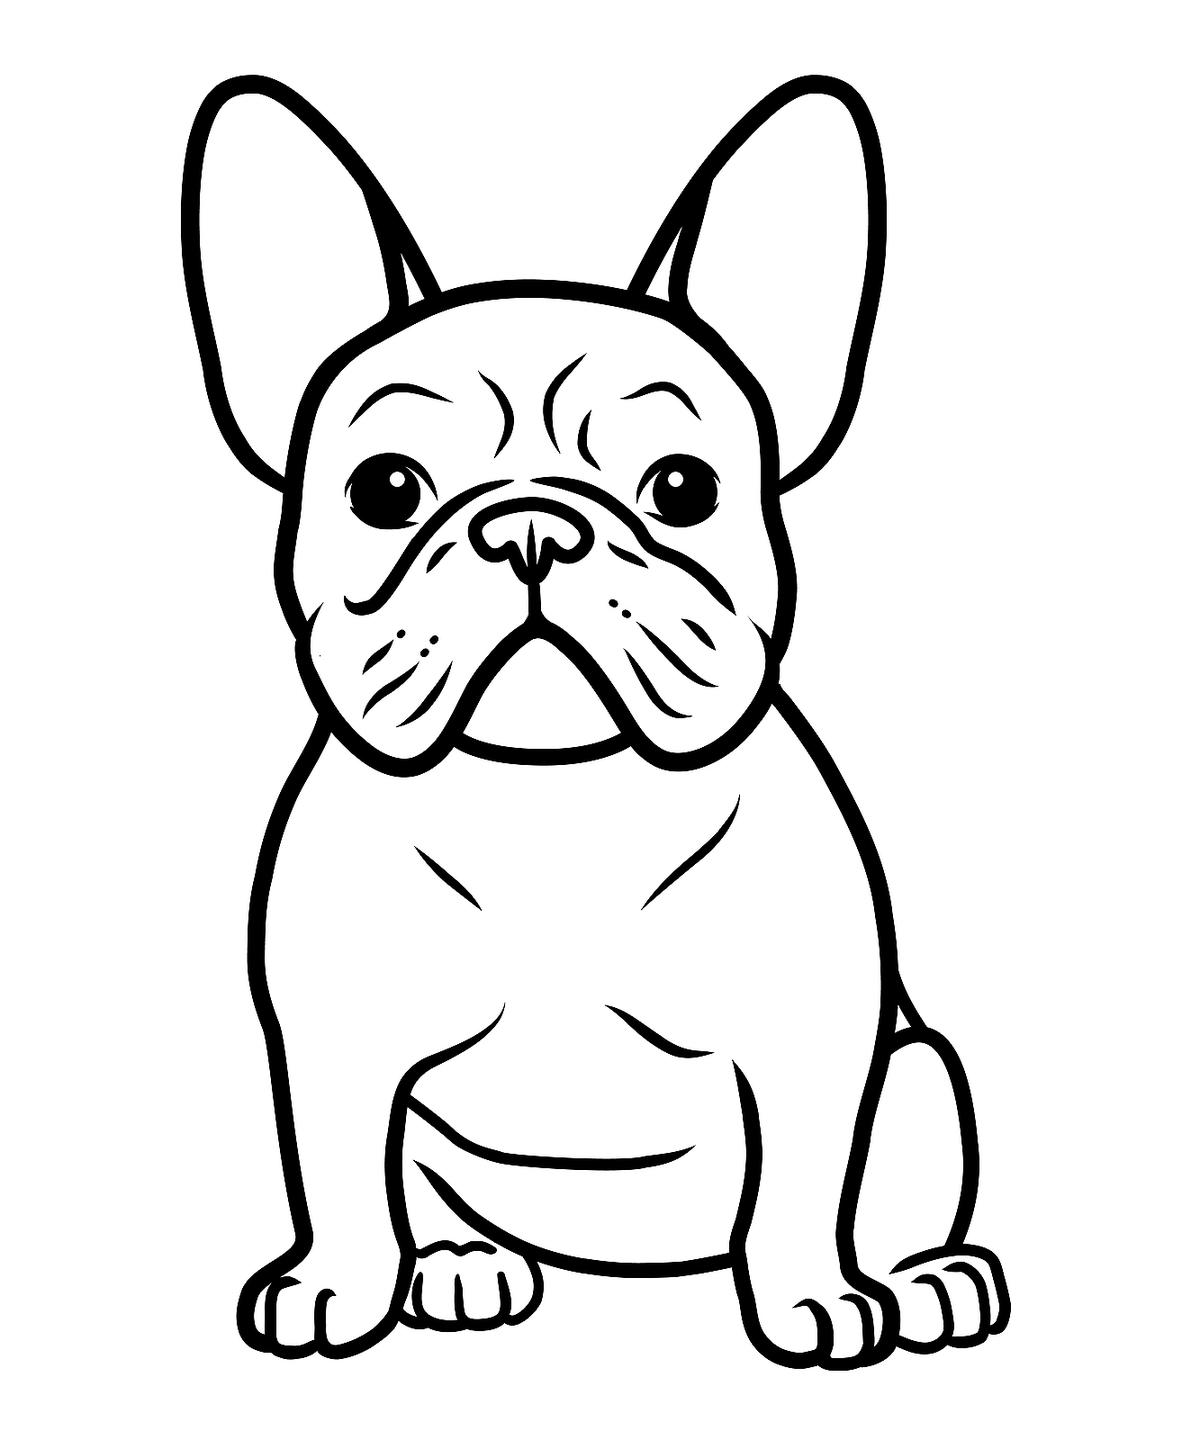 dog coloring in puppy dog pals coloring pages to download and print for free coloring dog in